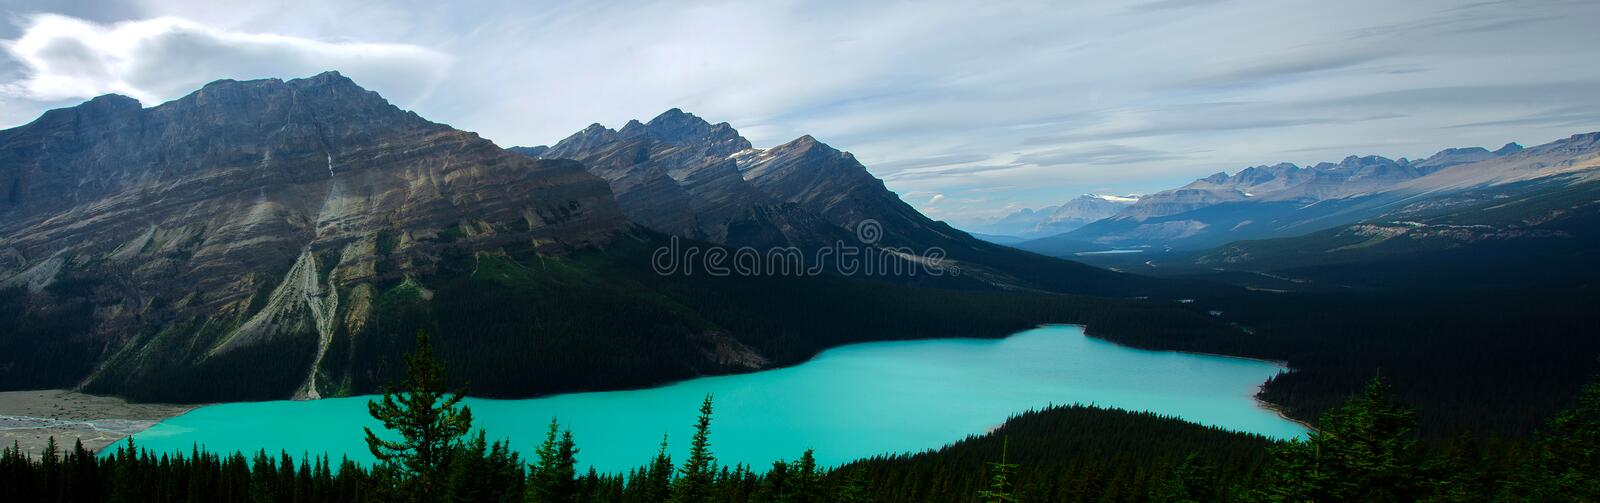 Vista di Panoramatic del lago Peyto in Rocky Mountains fotografia stock